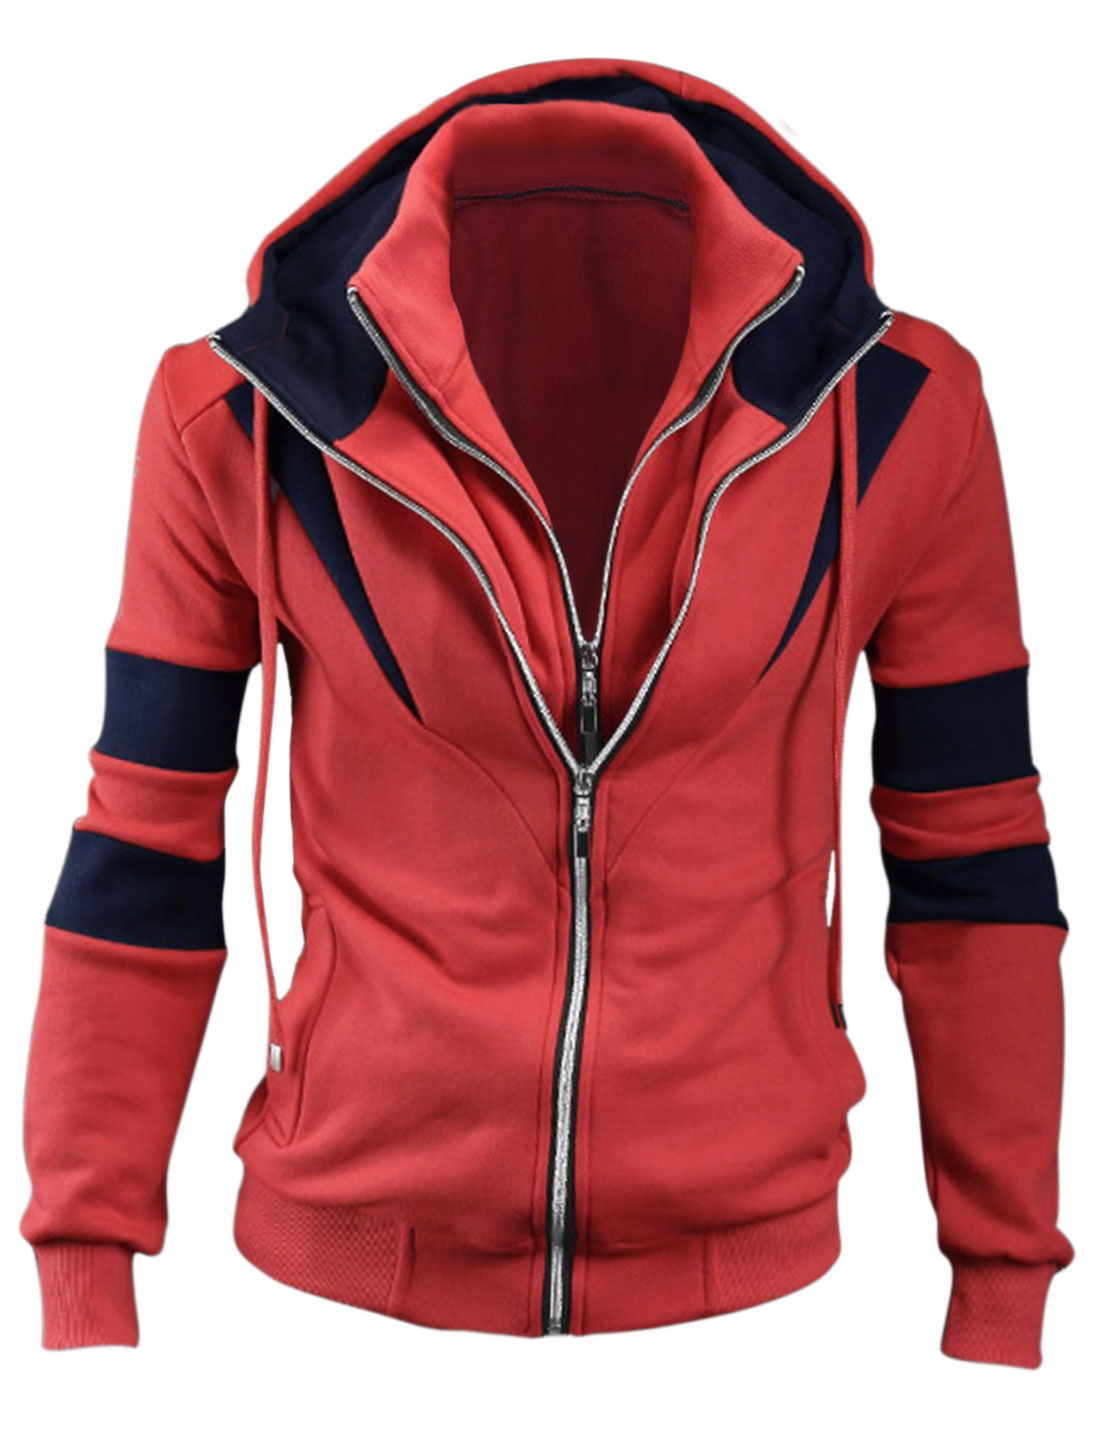 Men Convertible Collar Zip-Up Layered Hooded Jacket Watermelon Red M